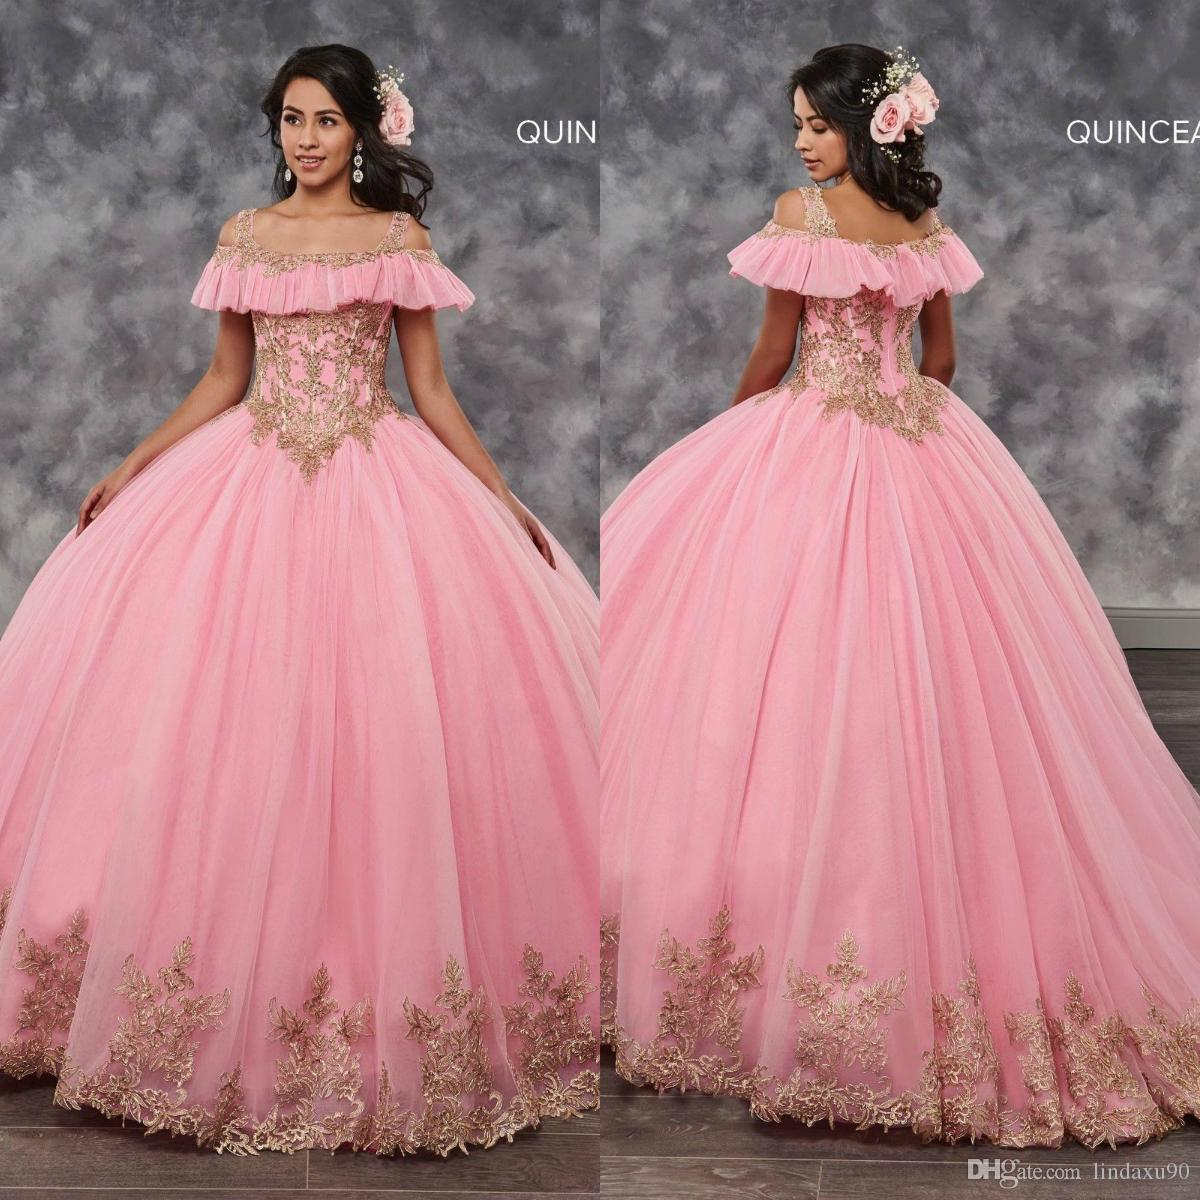 2998d9e890670 Pink Ball Gown 2019 Quinceanera Dresses Beaded Crystal Lace Appliqued Sweet  16 Dresses Ruffles Tulle Prom Dresses Plus Size